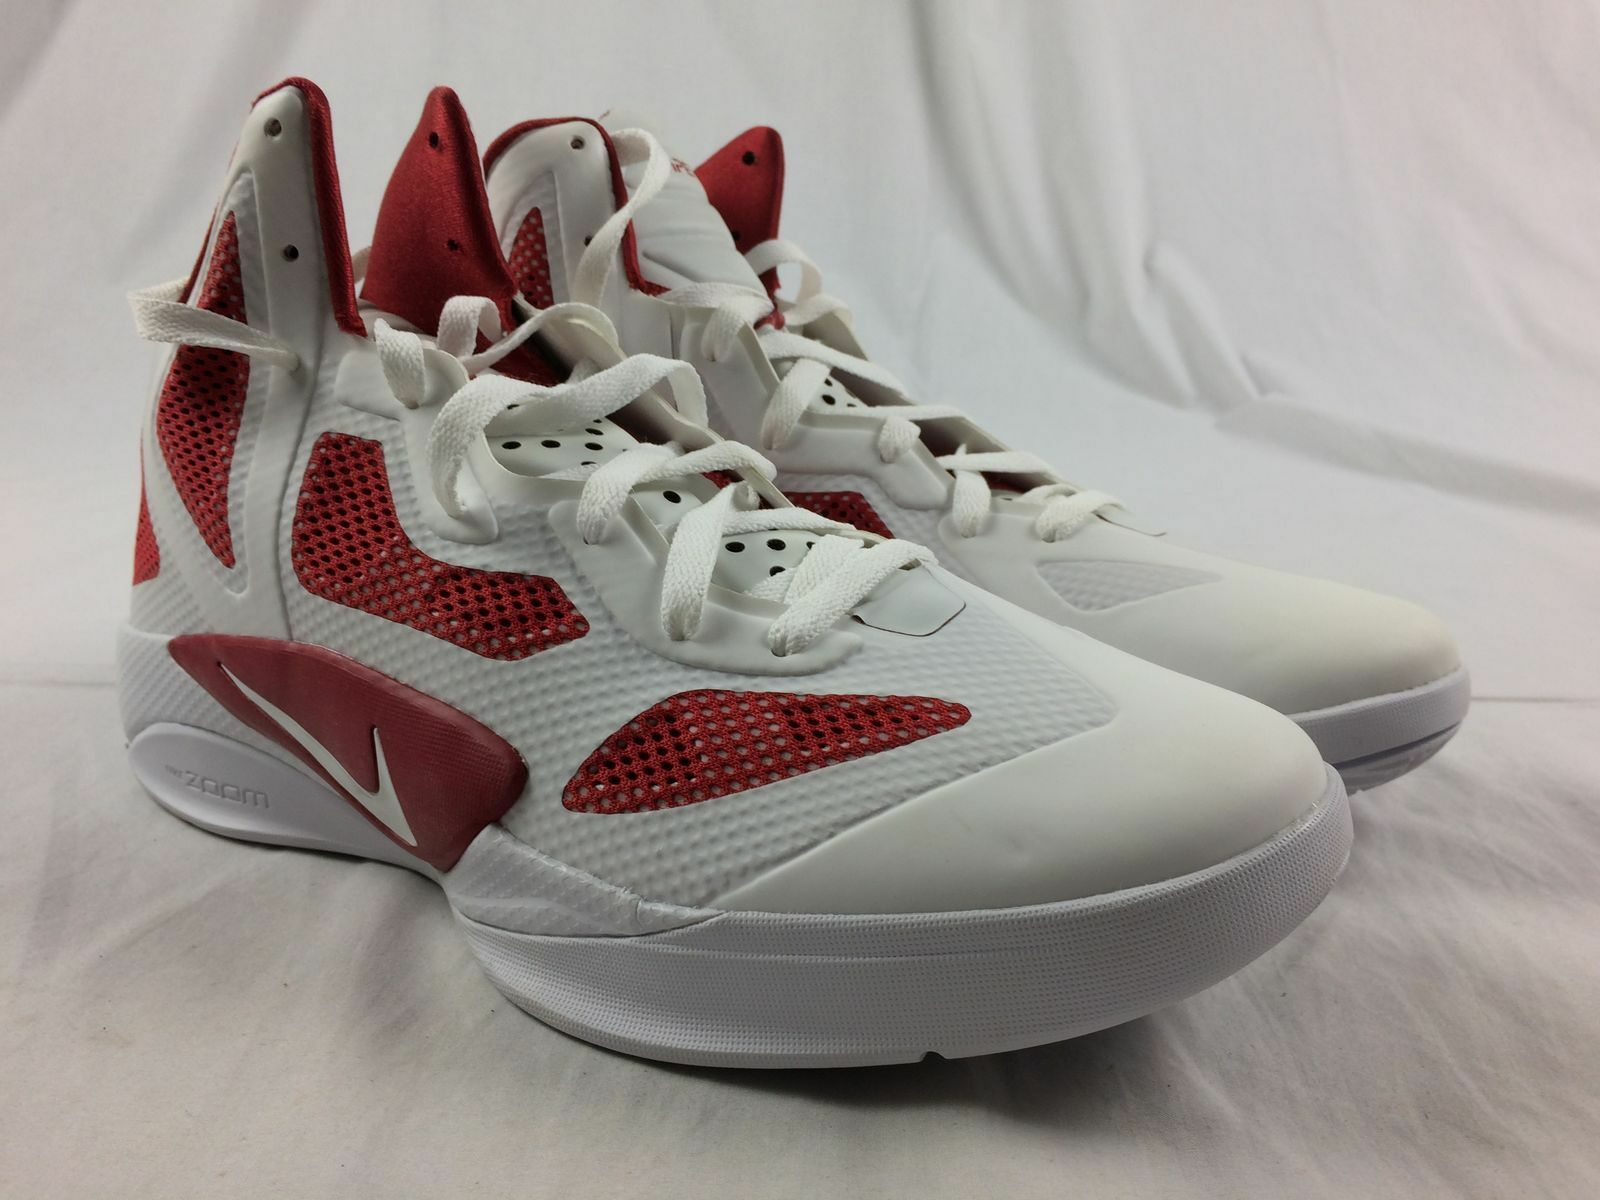 NEW Nike Hyperfuse - White/Red Basketball Shoes (Men's 12.5)